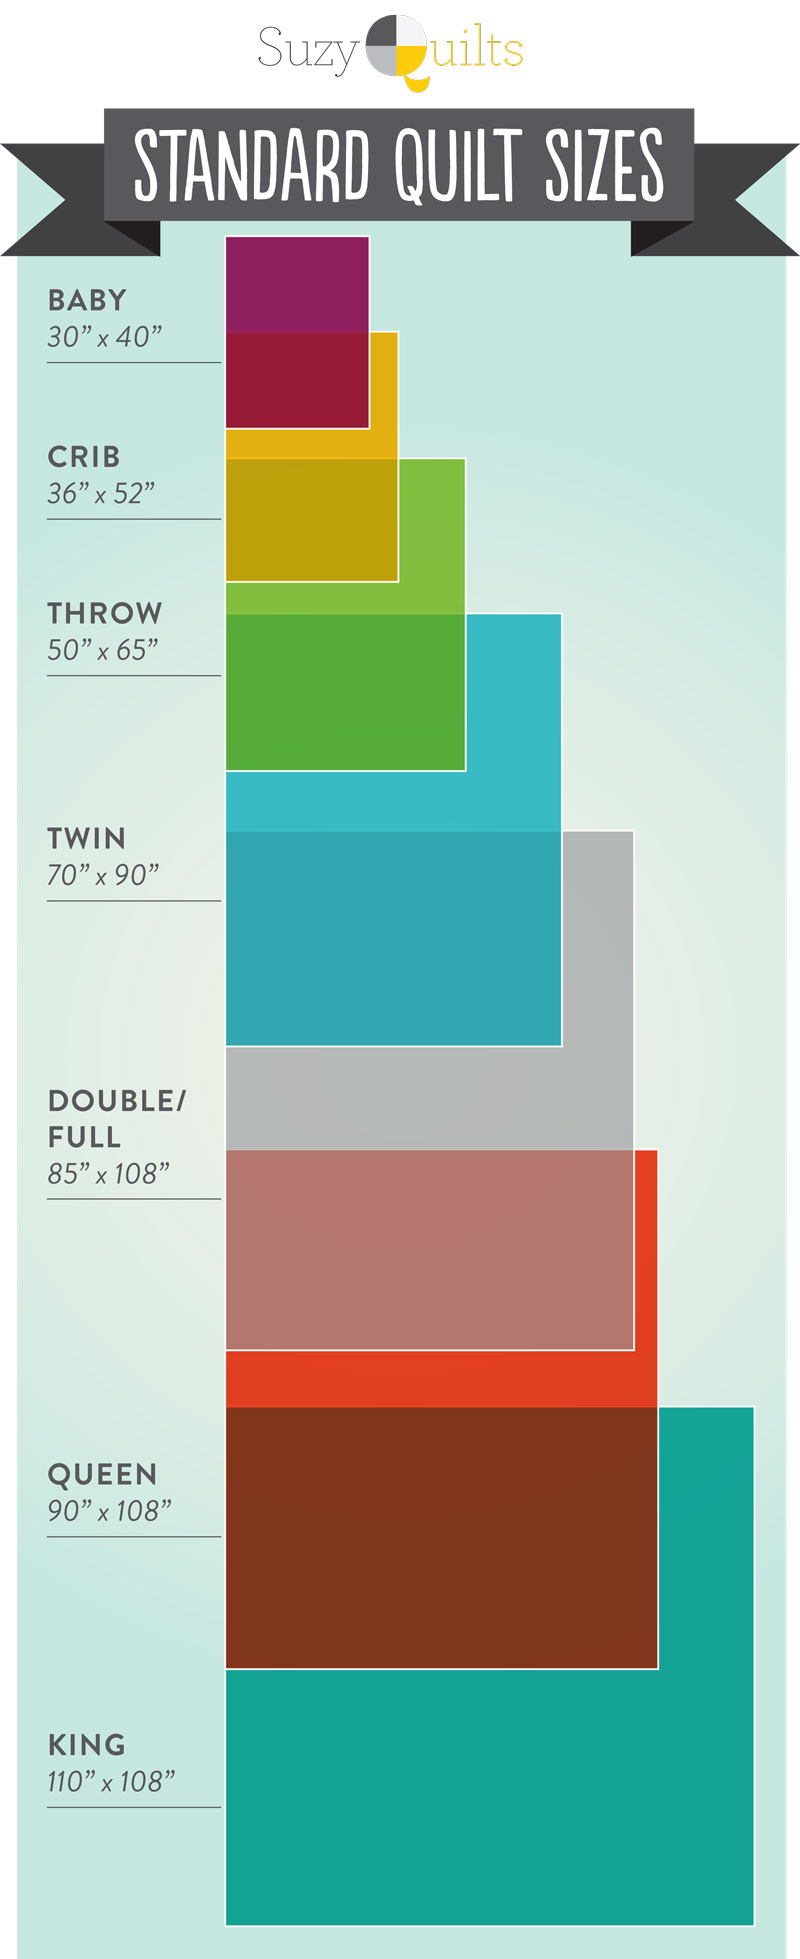 Before getting into too many details take a look at this quilt sizes chart quilt_sizes_infographic